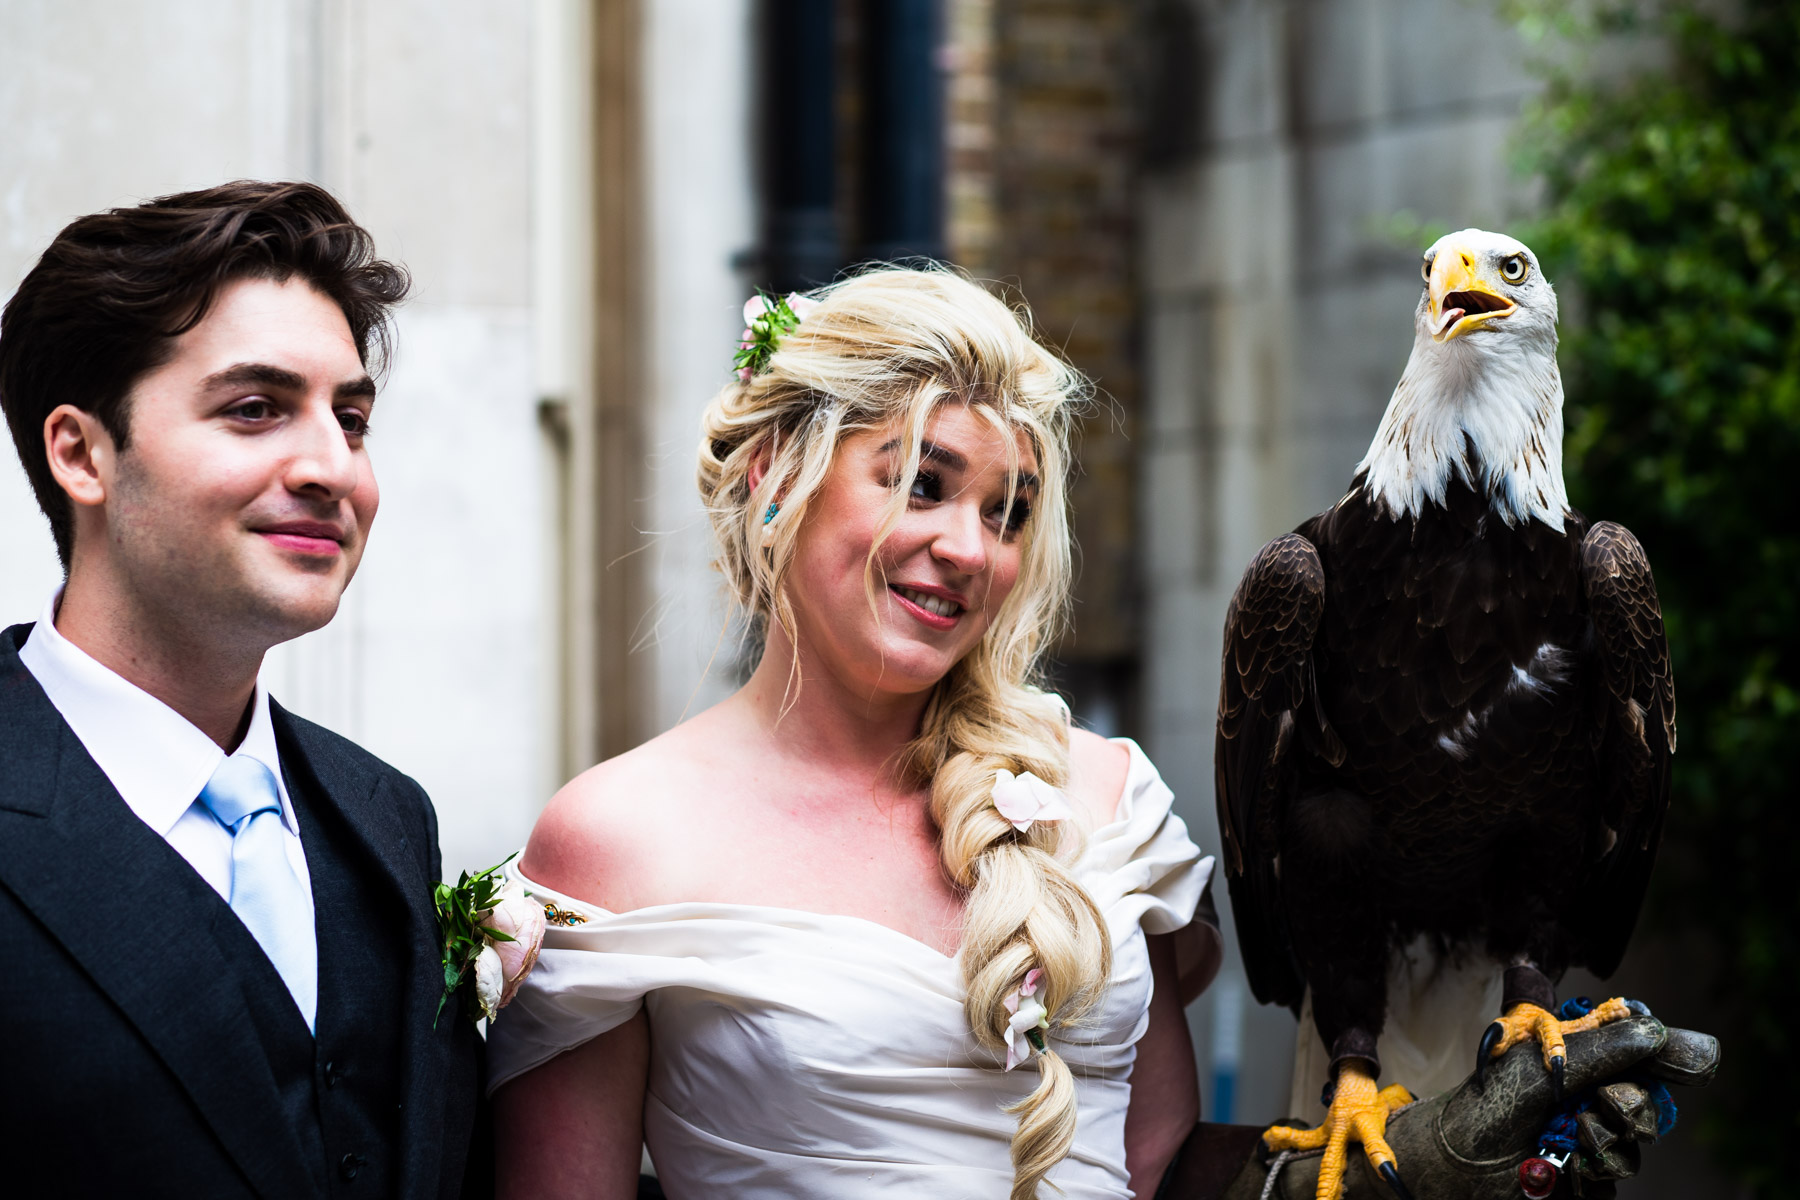 Bride and groom at Dartmouth House in Green Park, London.